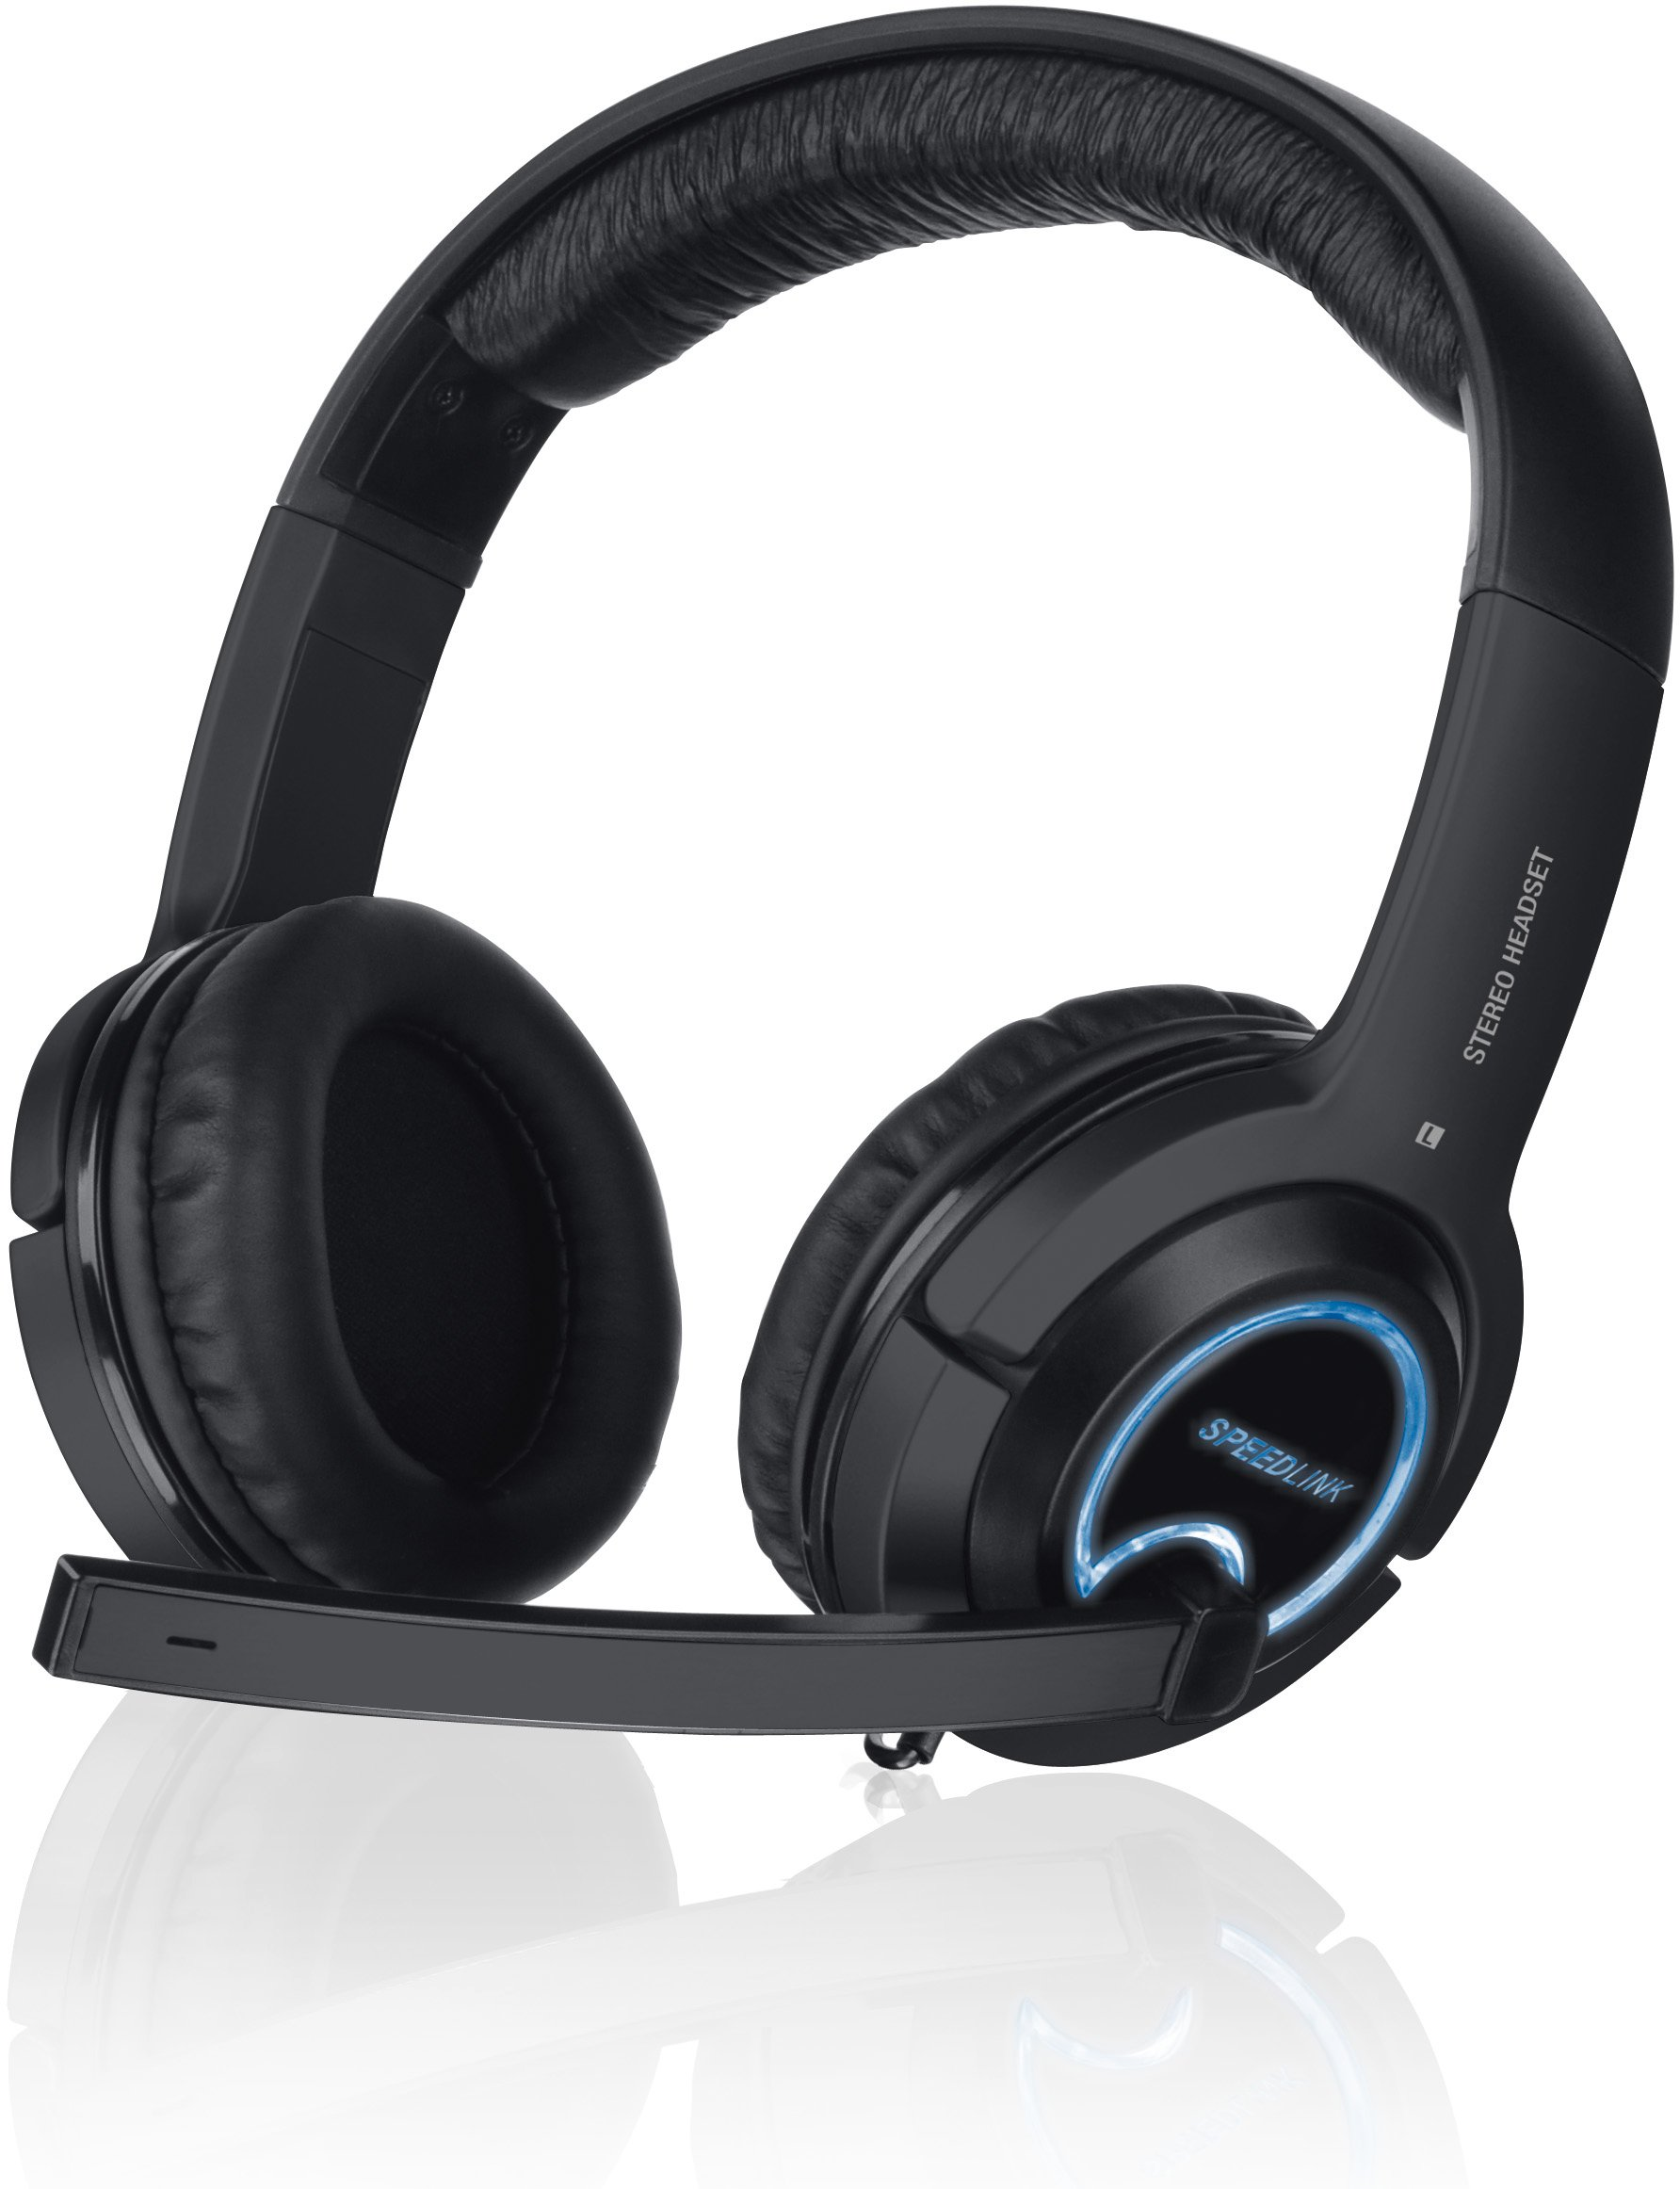 Speedlink Xanthos Stereo Console Gaming Headset - Black (PS4/PS3/PC/Xbox 360) by Speedlink